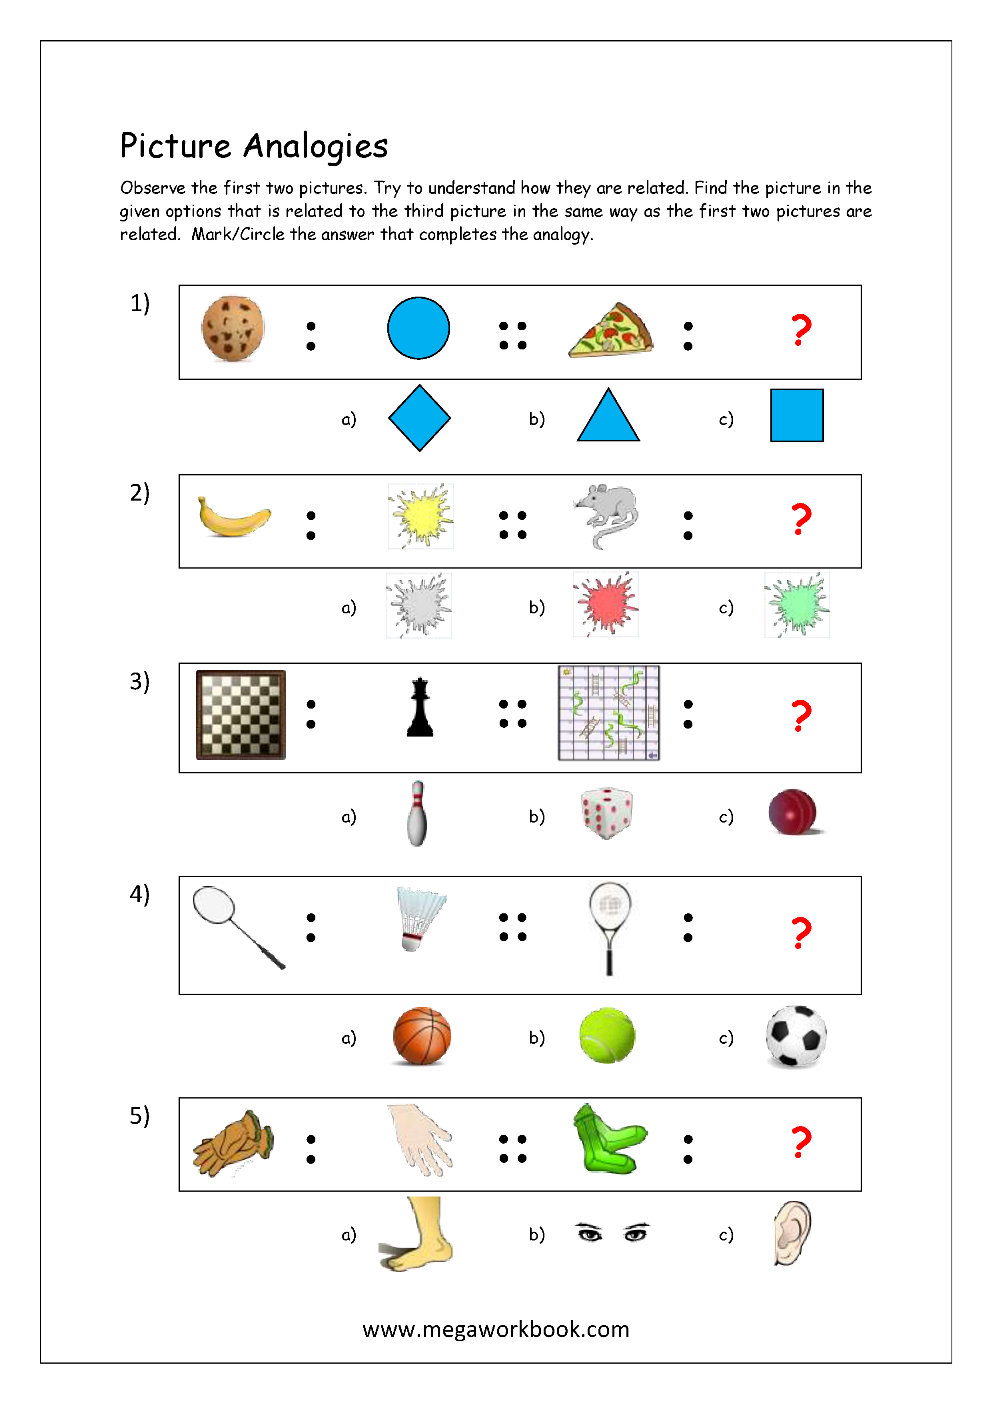 Analogy Worksheets For Middle School | db-excel.com